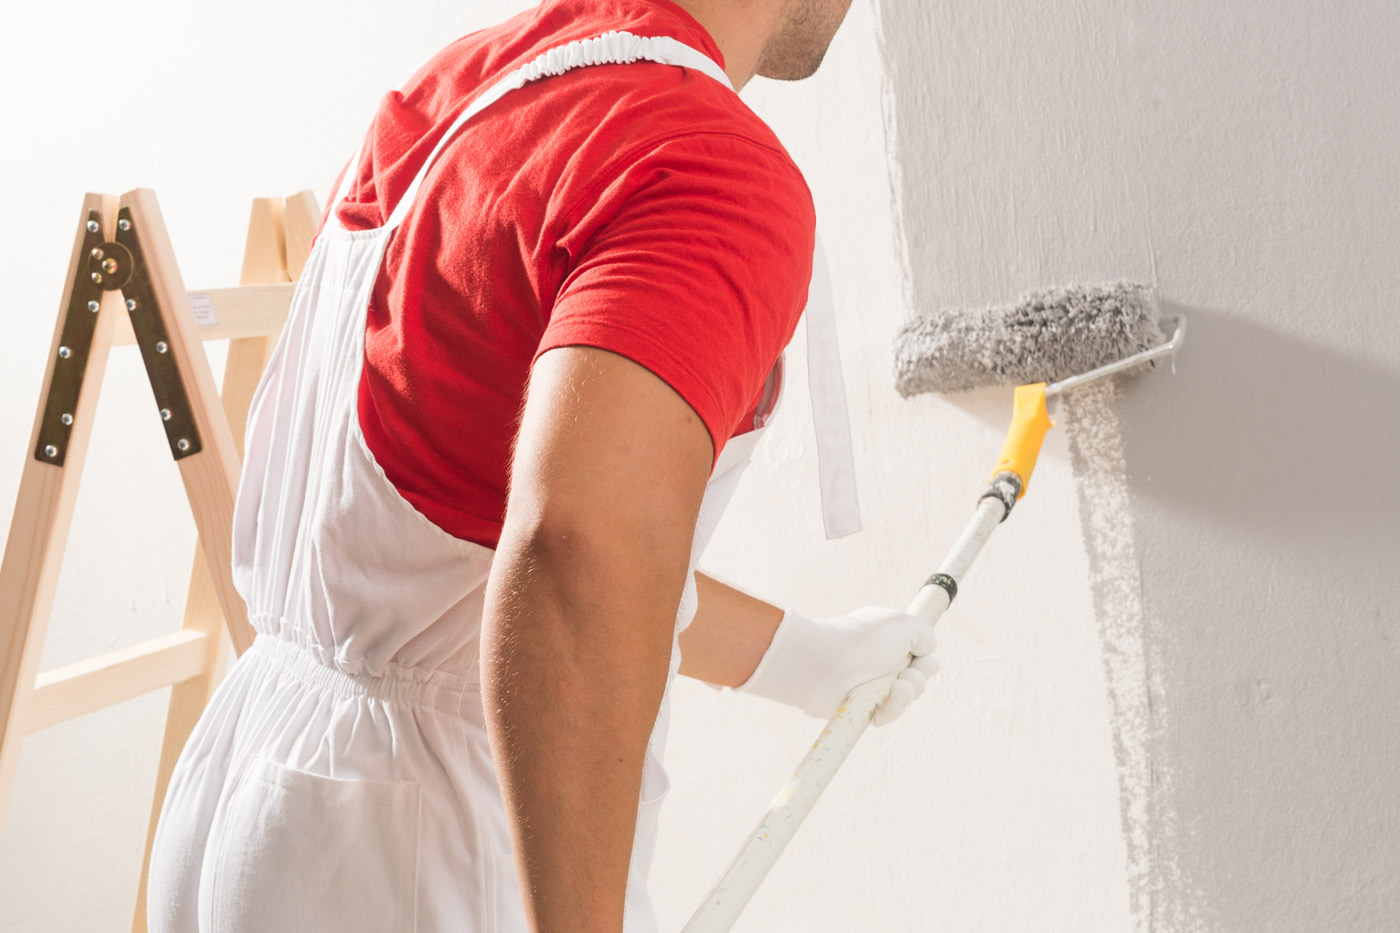 pressure-wash-grand-rapids-interior-painting-services